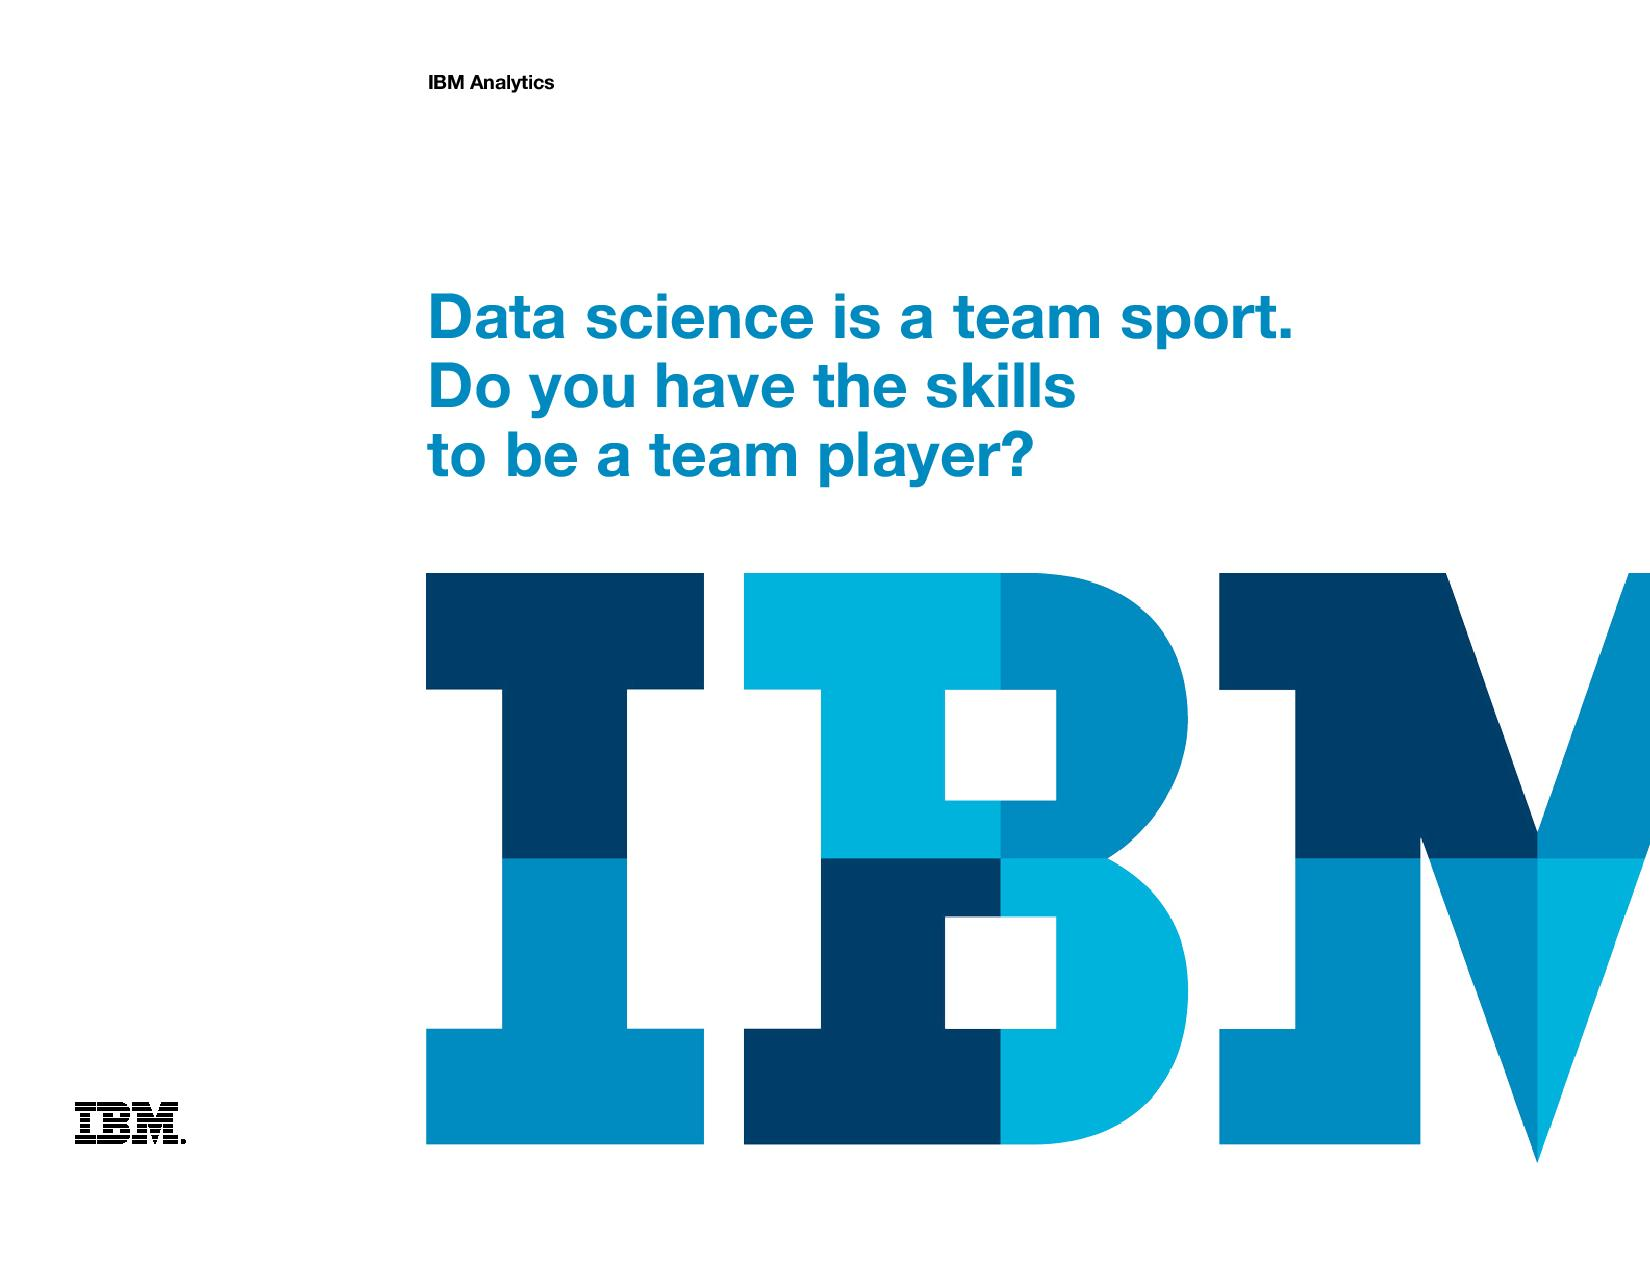 Data science is a team sport. Do you have the skills to be a team player?